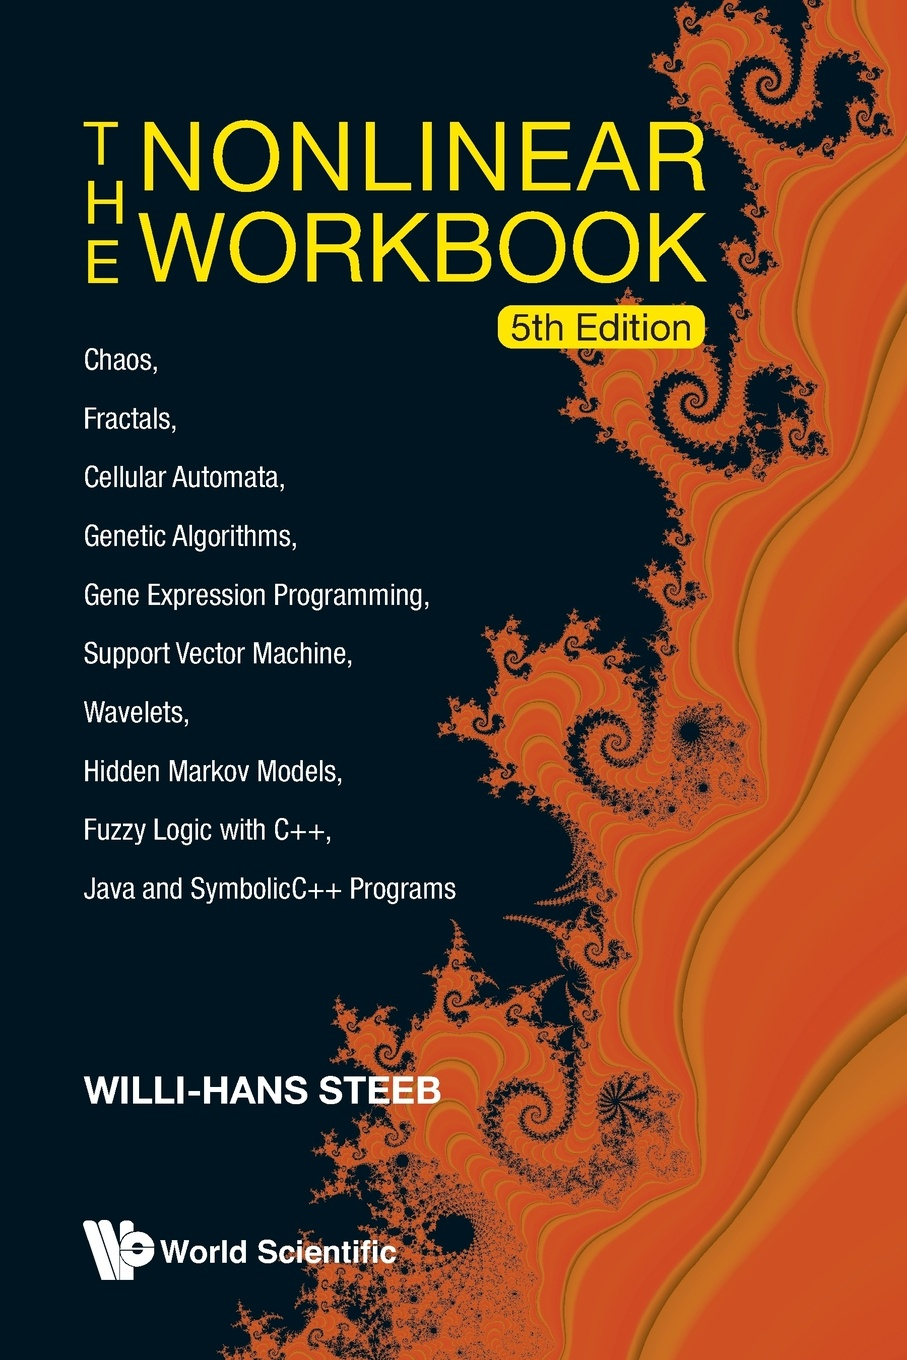 Willi-Hans Steeb The Nonlinear Workbook. Chaos, Fractals, Cellular Automata, Genetic Algorithms, Gene Expression Programming, Support Vector Machine, Wavelets, genetic programming